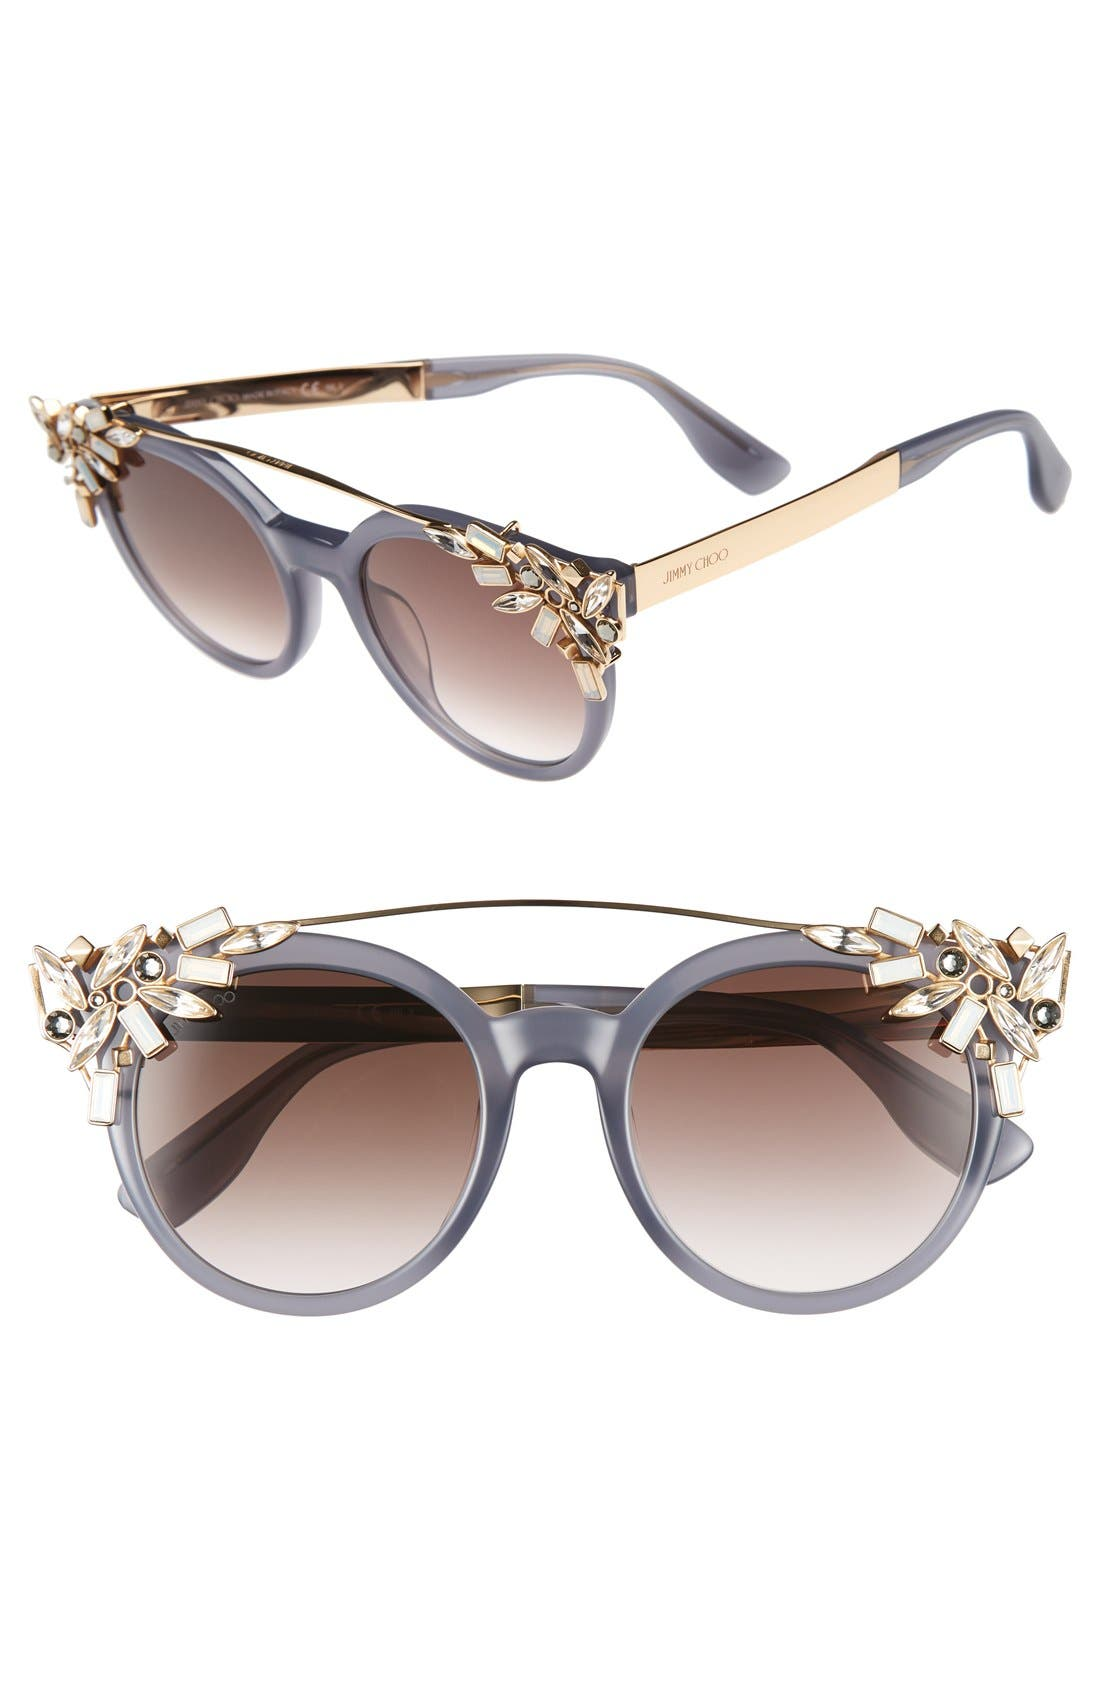 Jimmy Choo 'Vivy' 51mm Sunglasses